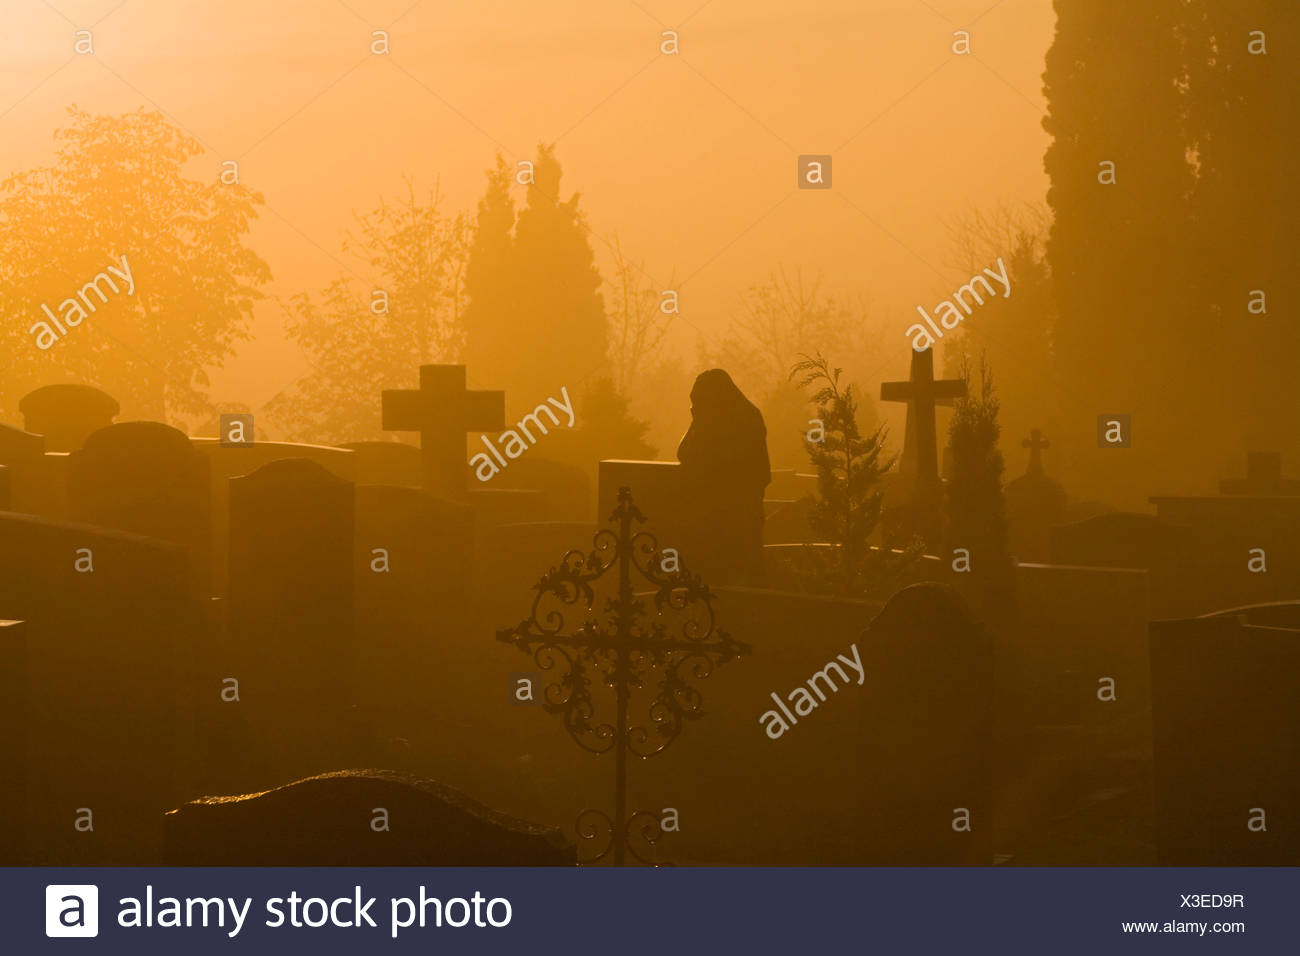 Germany, Bavaria, Hohenpeißenberg, Grave yard at dawn - Stock Image